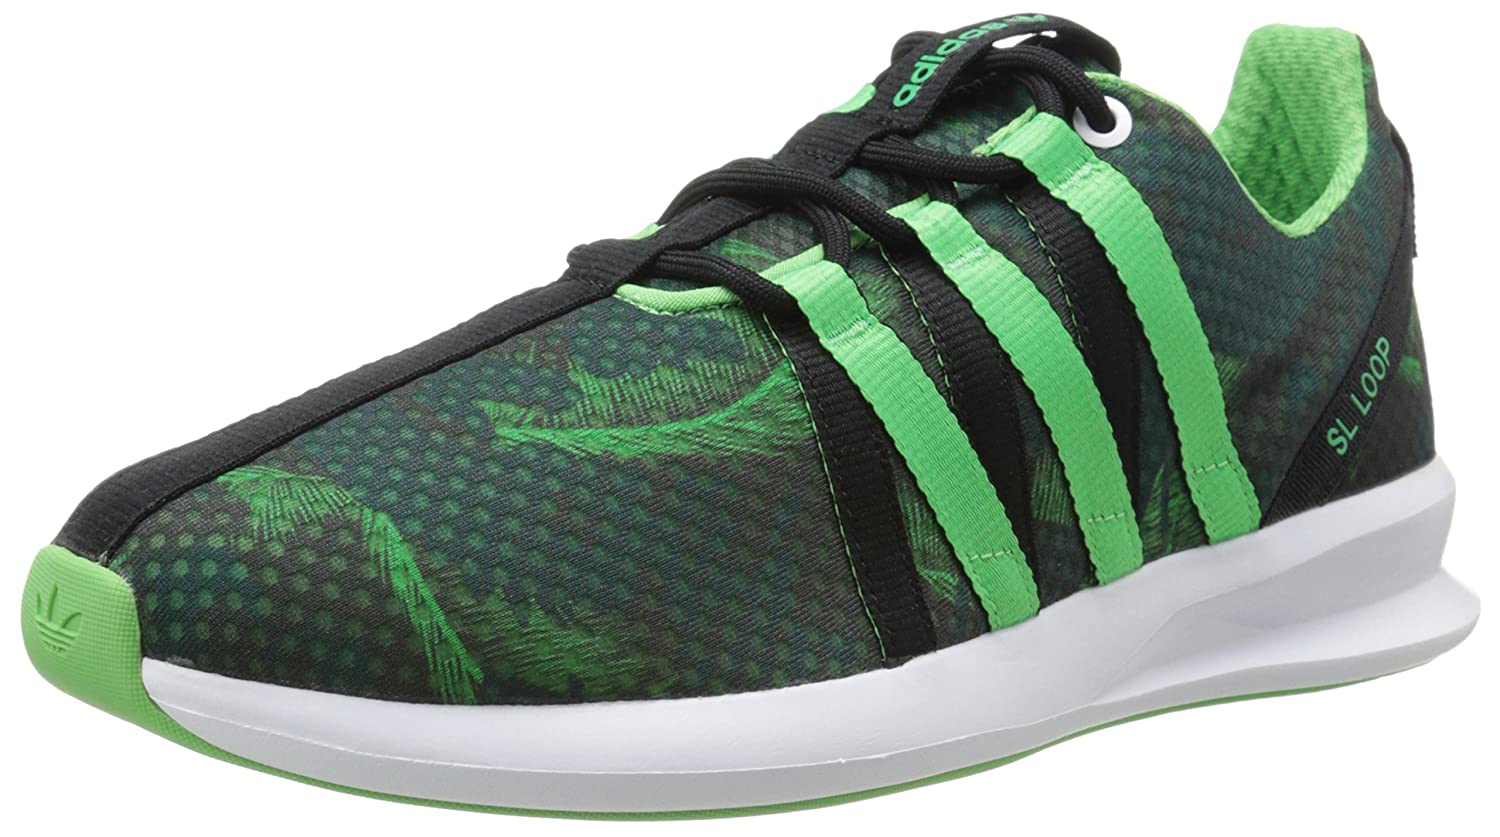 adidas Originals Women's SL Loop Racer W Lifestyle Sneaker B00O2KG2VA 7 B(M) US|Core Black/Surf Petrol/Running White